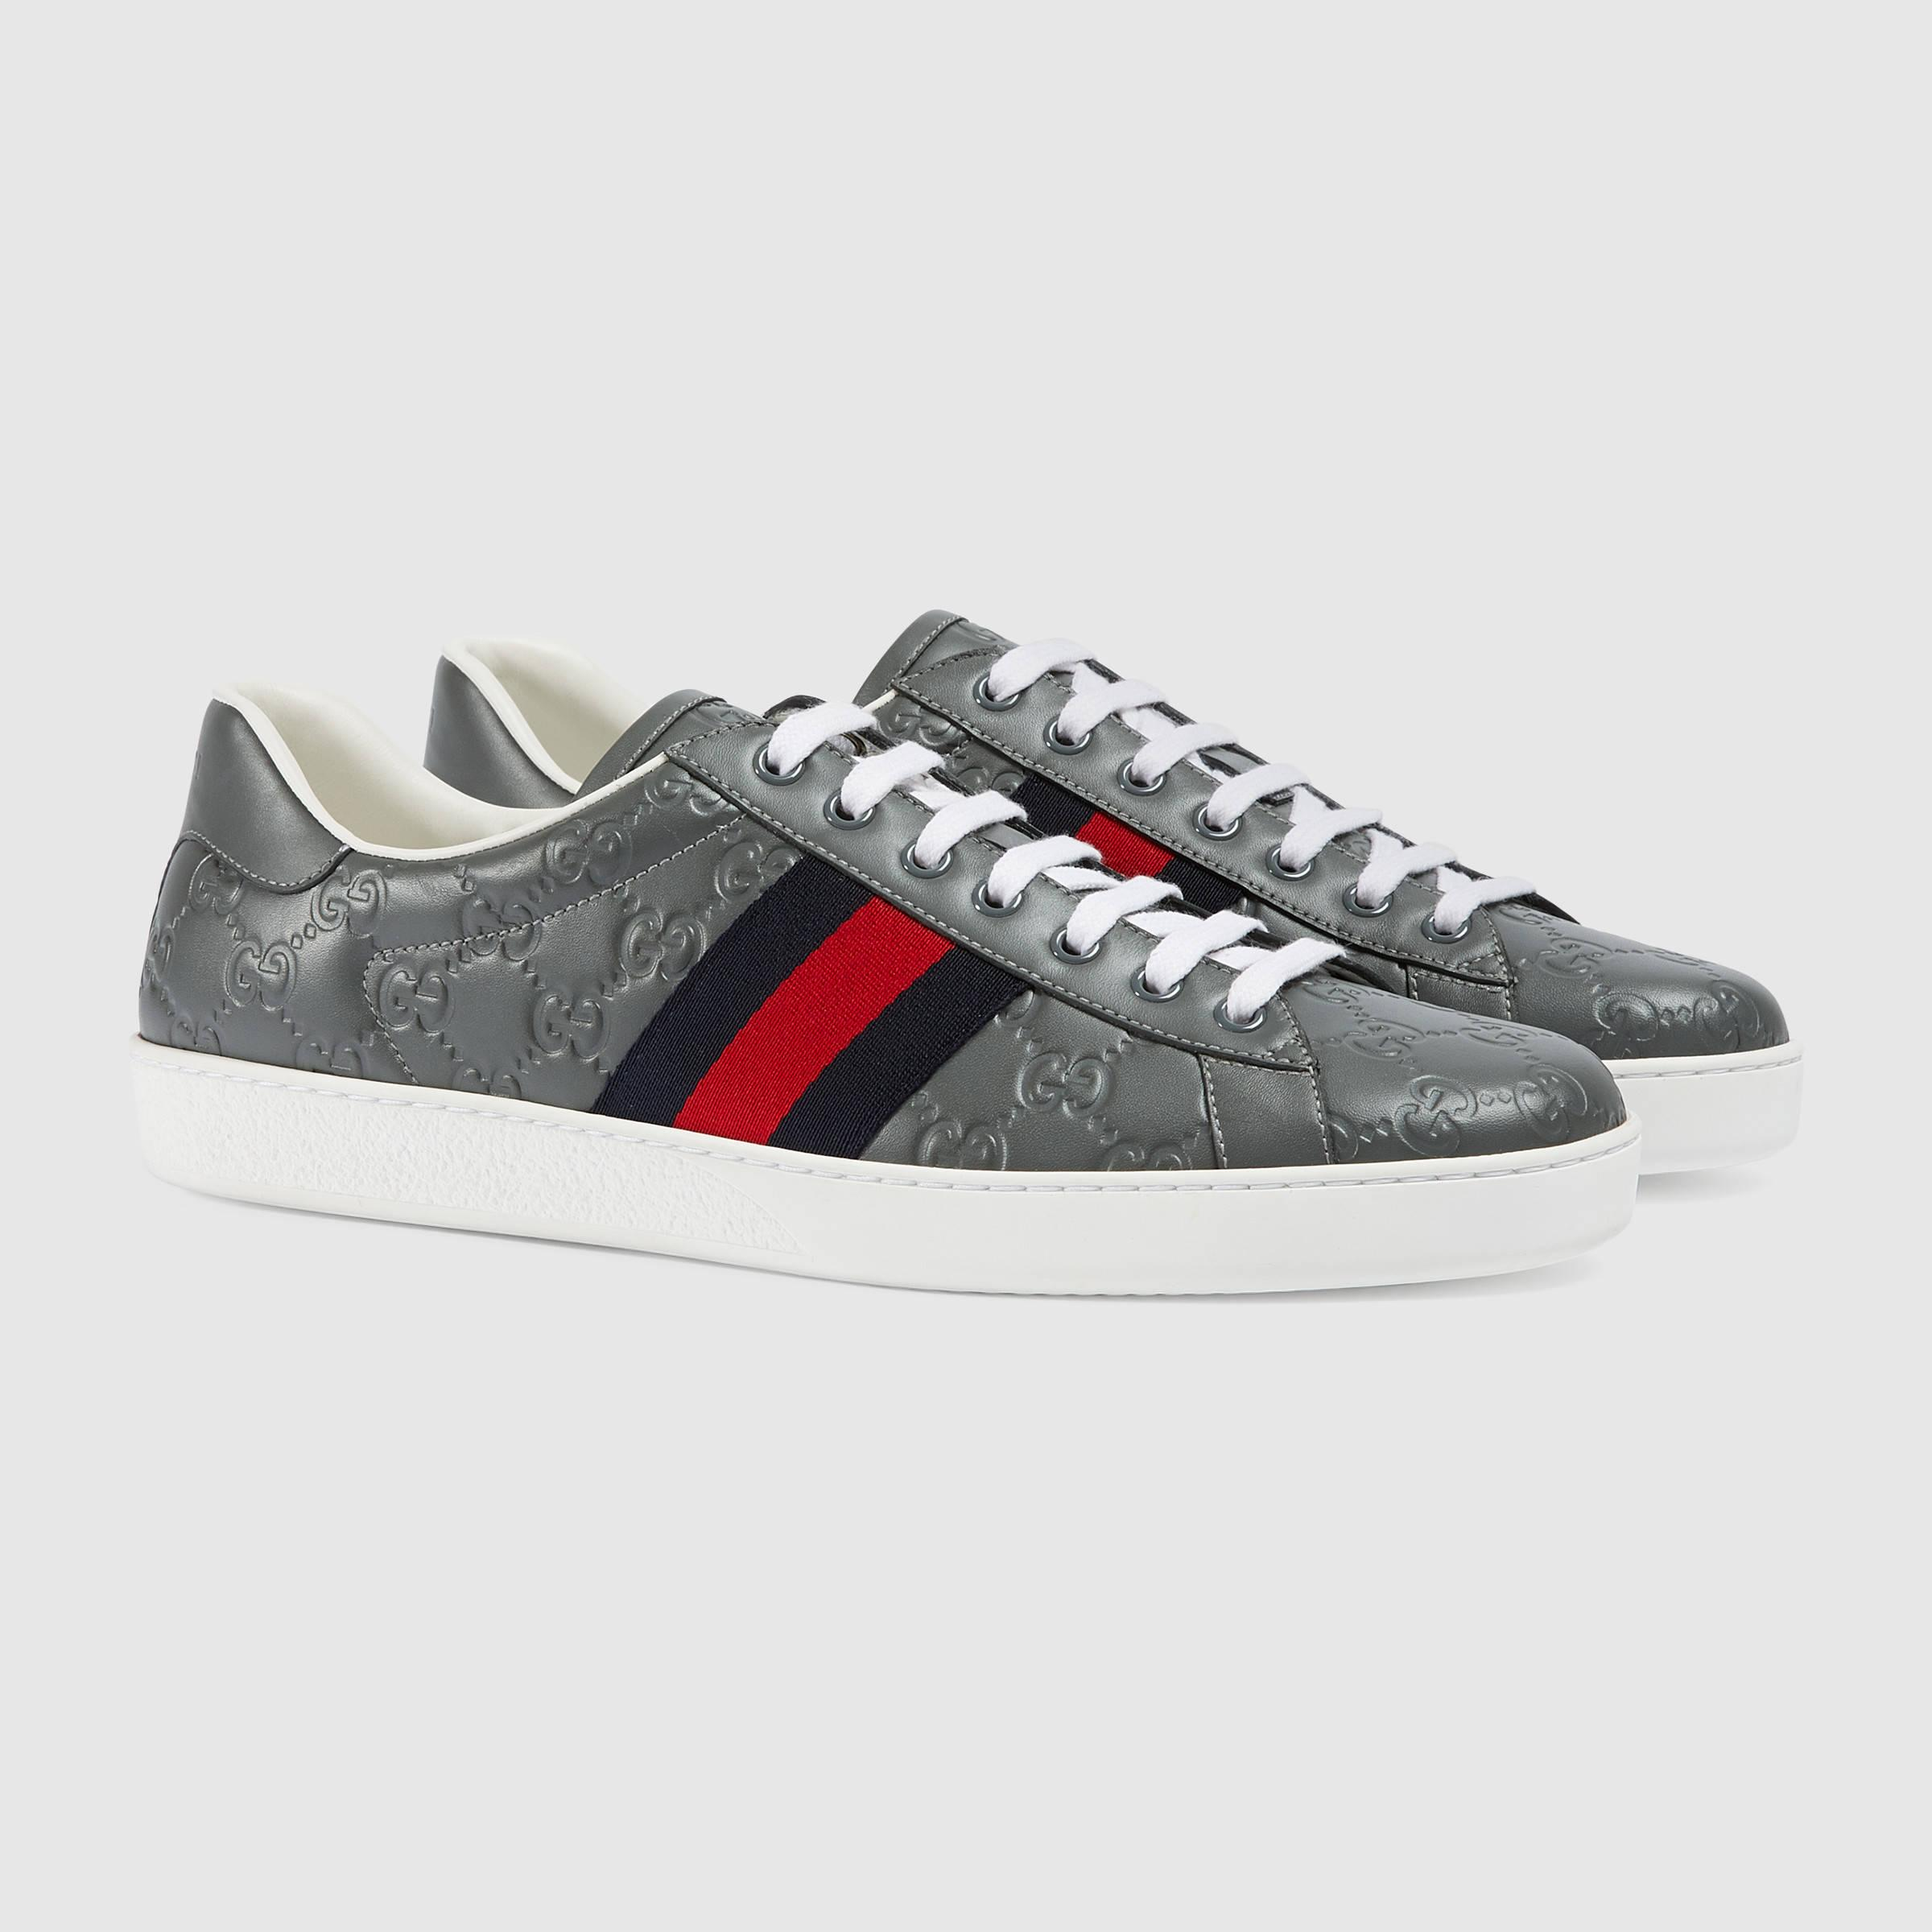 951b76398d2e Gucci Ace Signature Low-top Sneaker in Gray for Men - Lyst